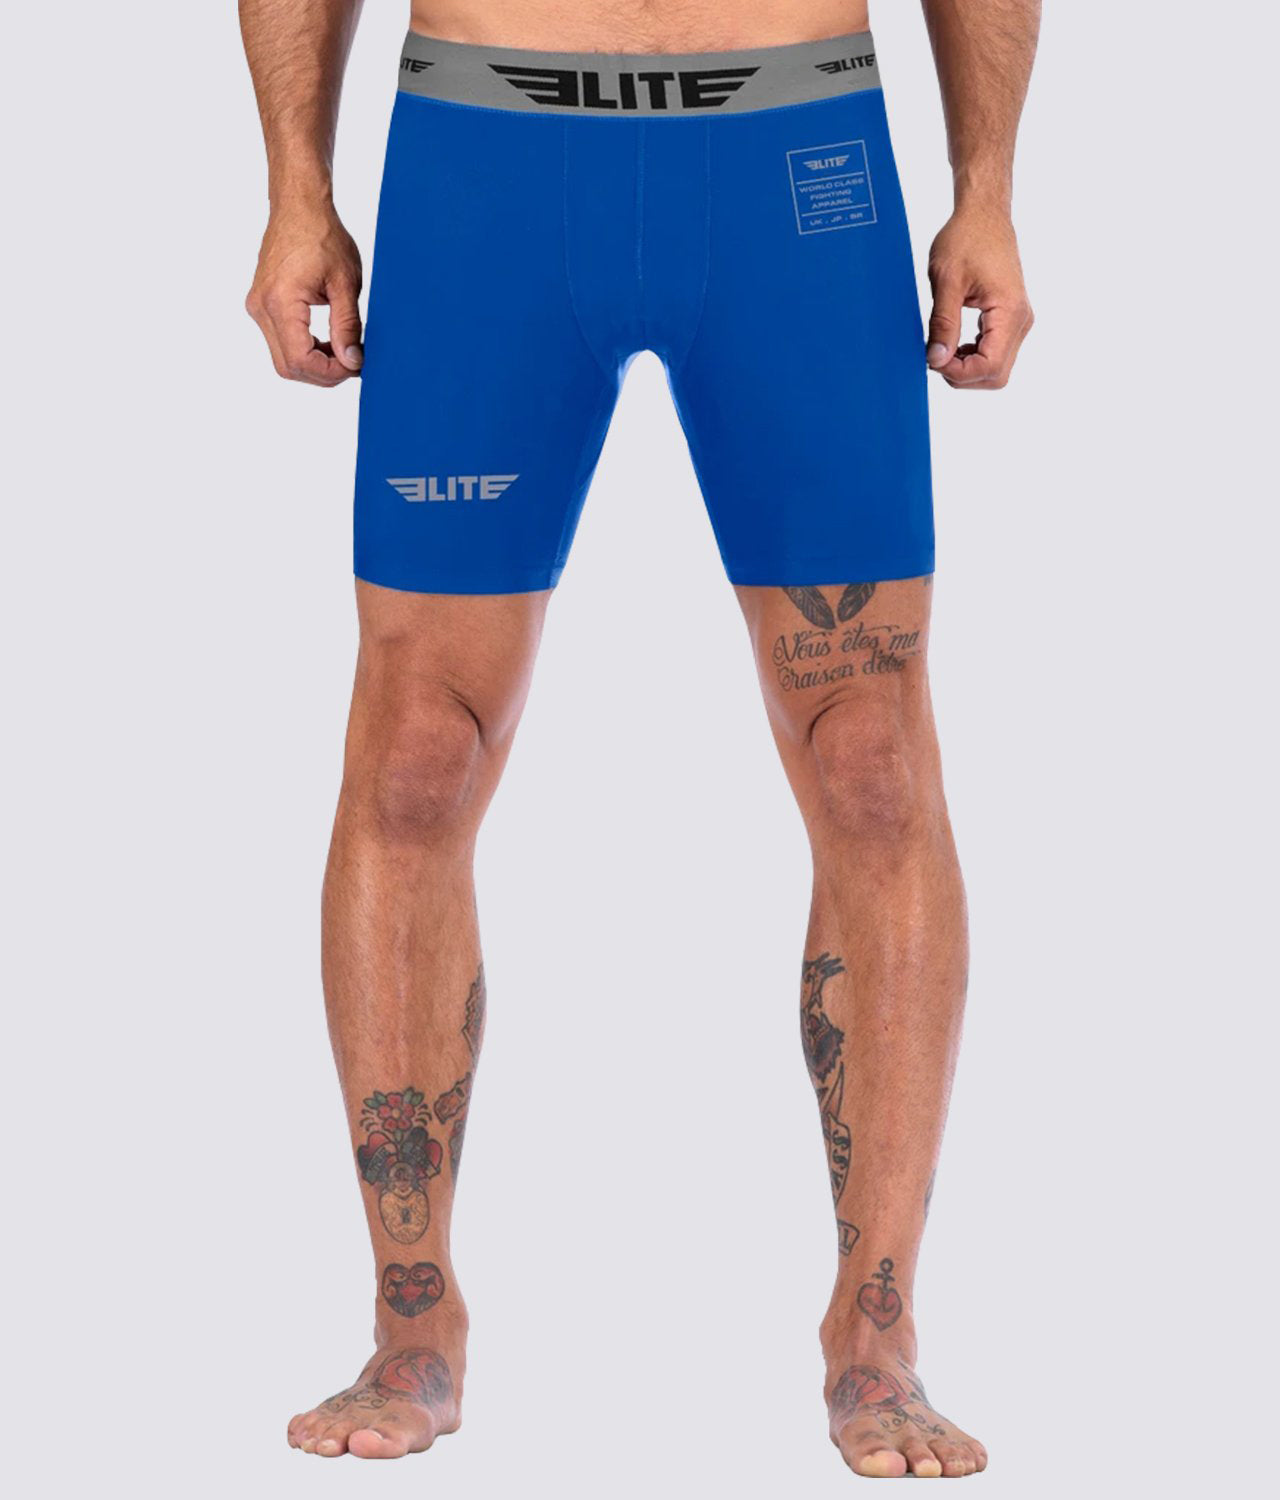 Elite Sports Blue Compression Judo Shorts